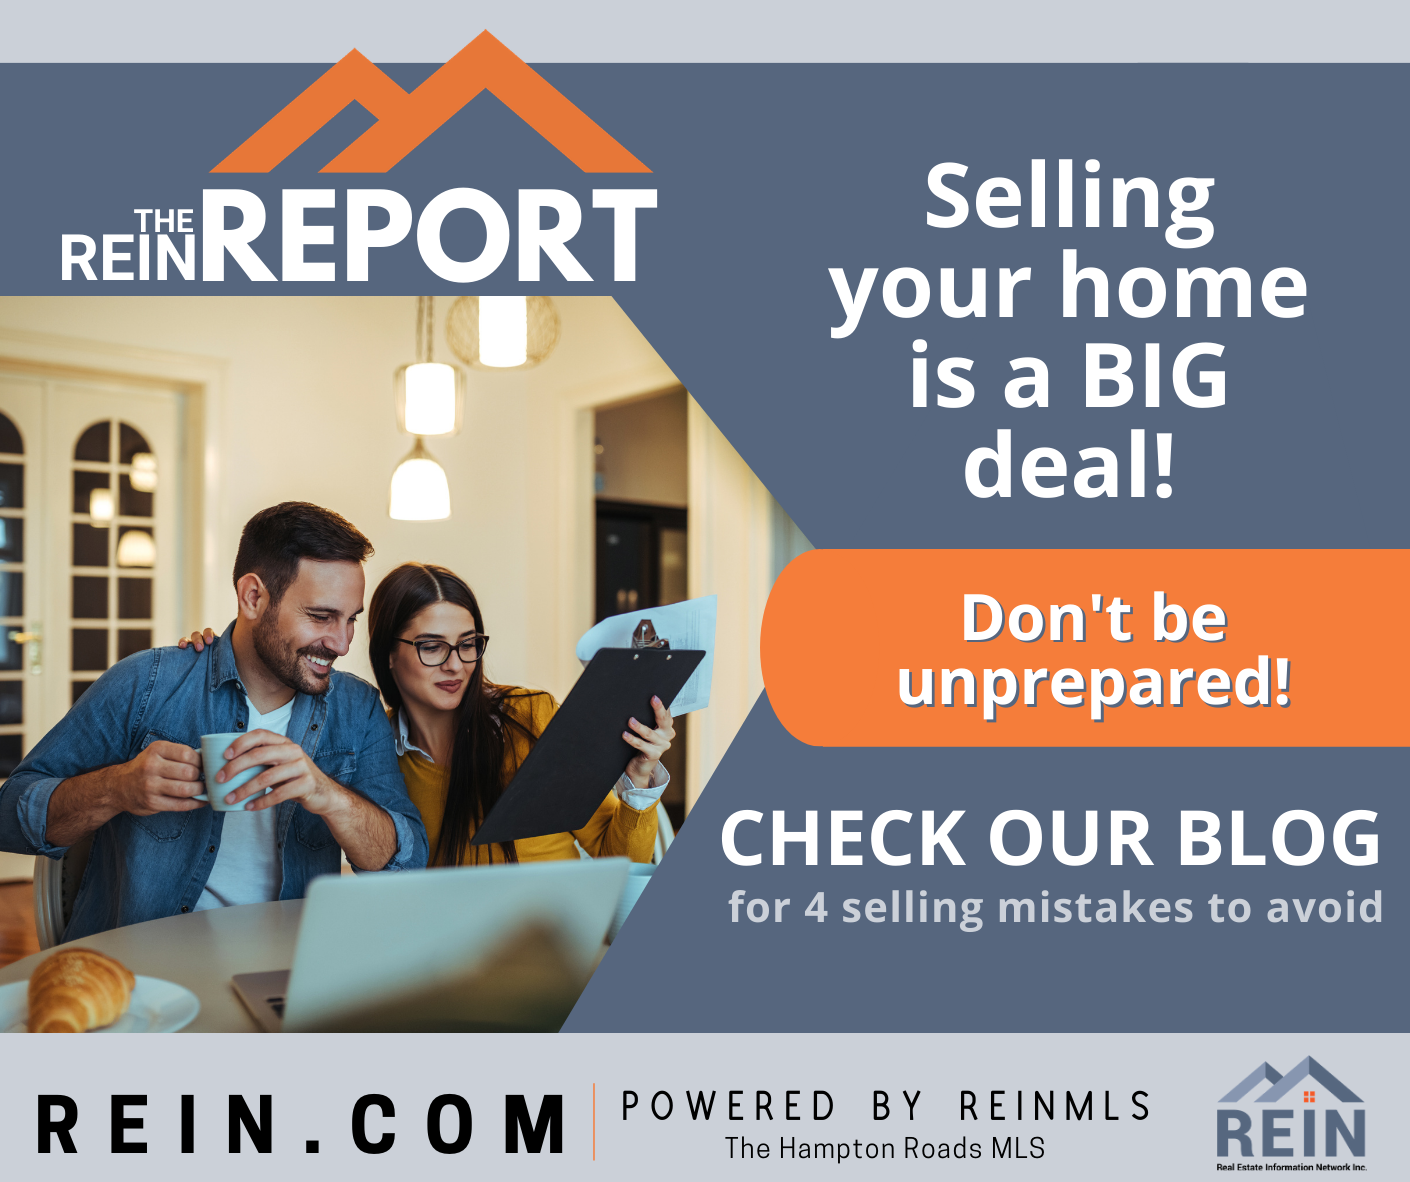 REIN REport, selling your home